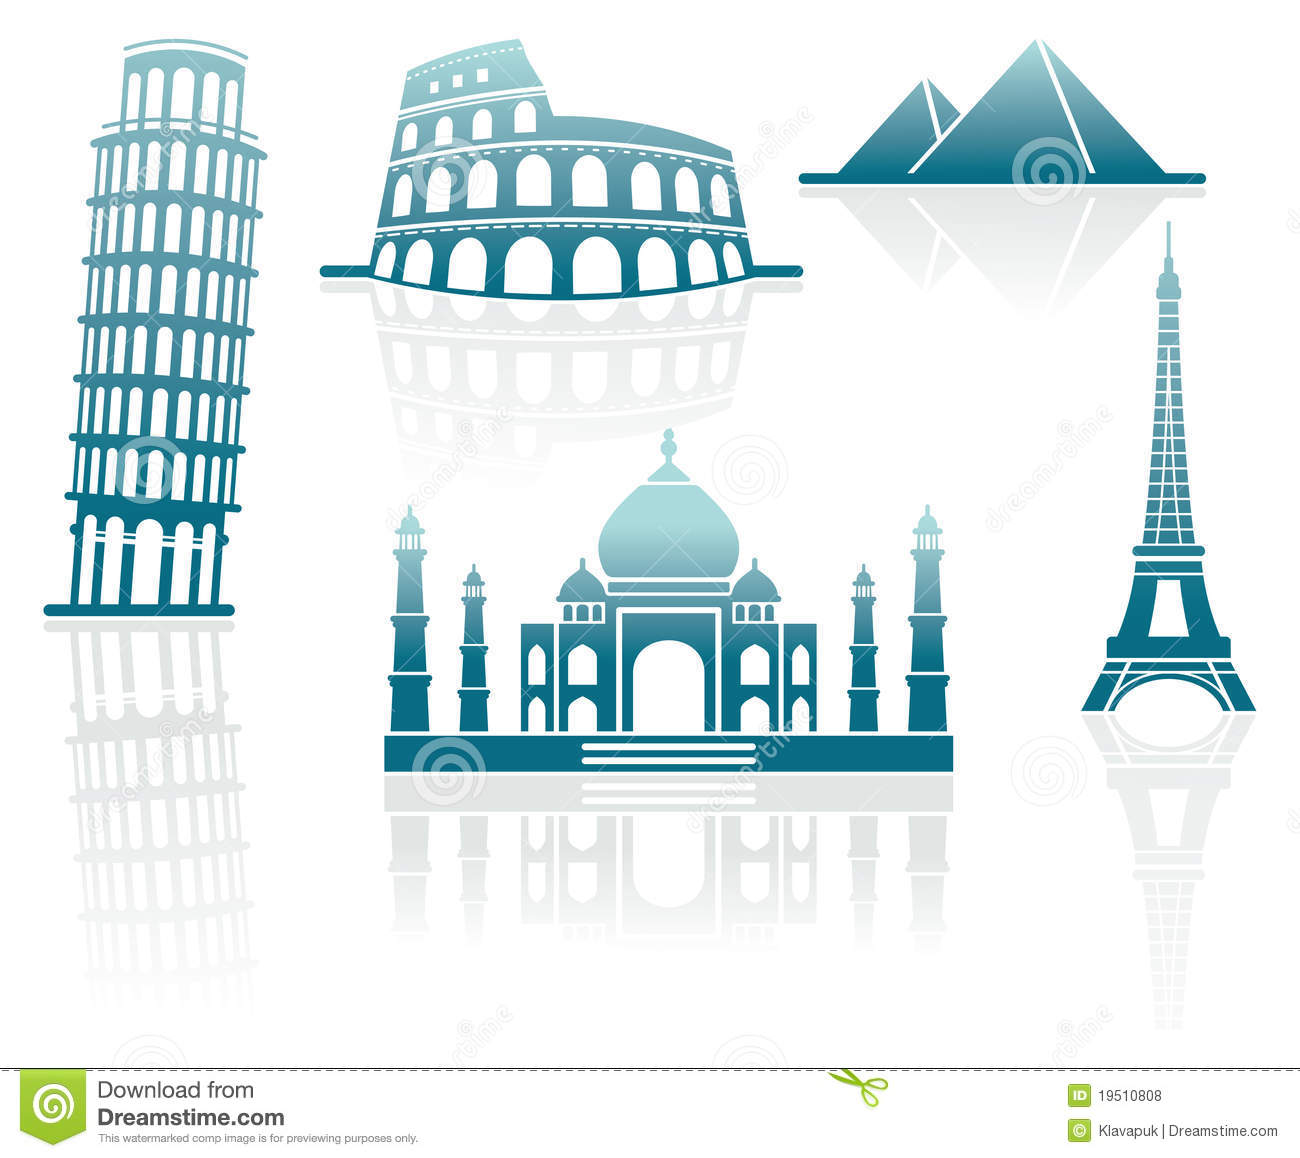 Free Clip Art of Monuments.